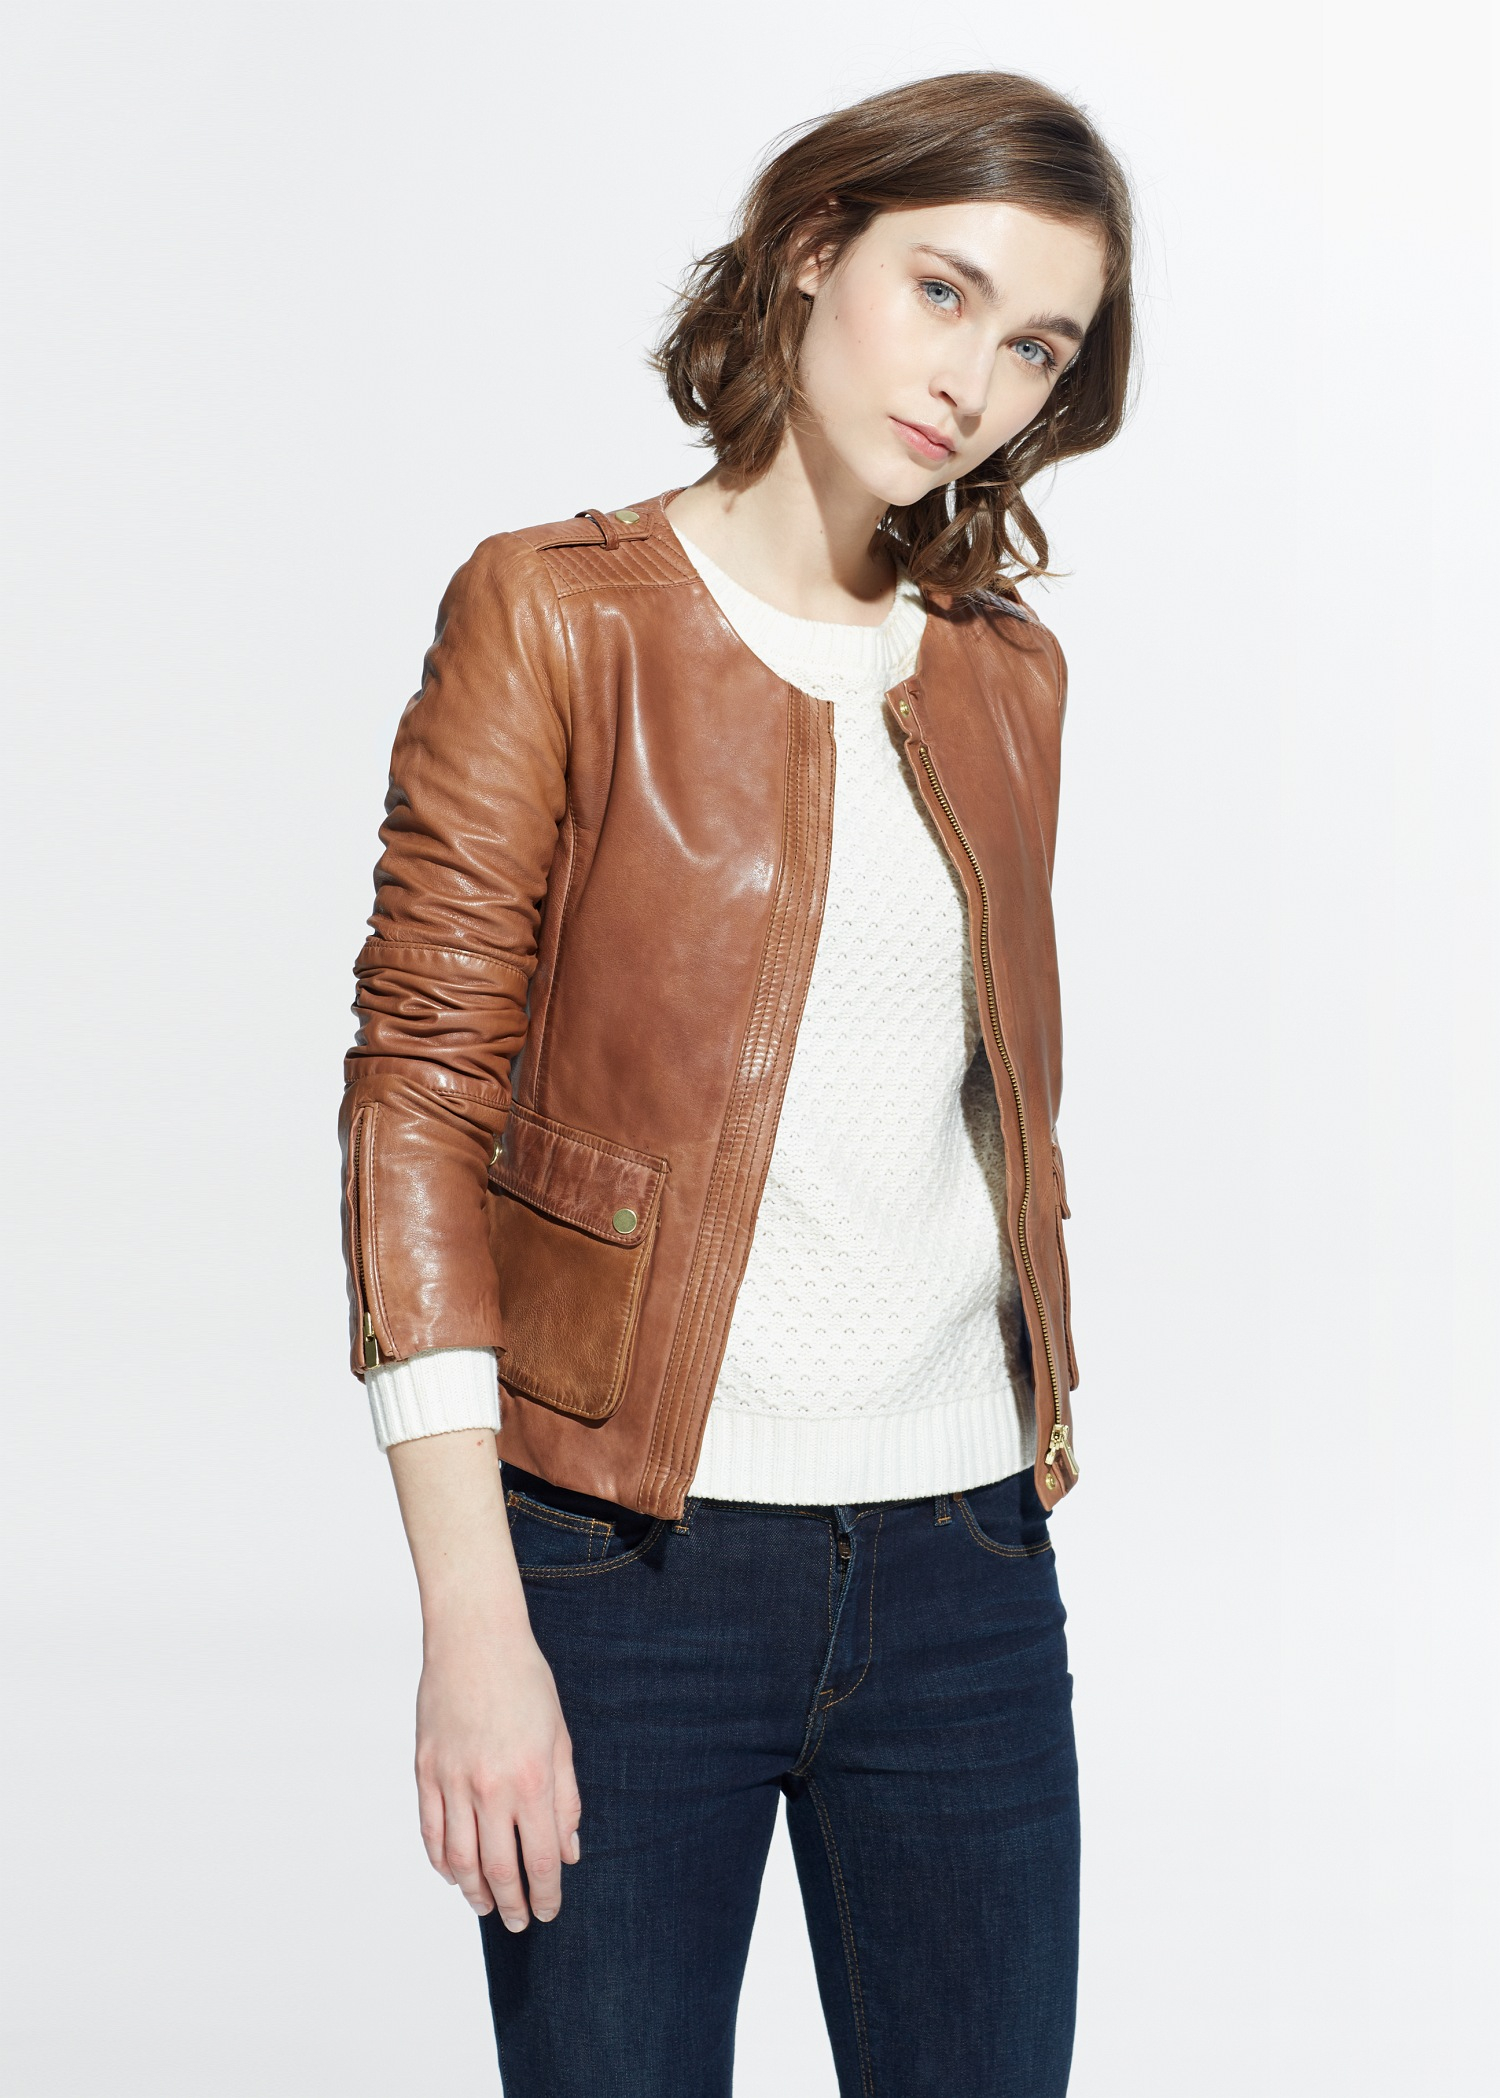 Lyst - Mango Pocket Leather Jacket in Brown 185f889ff